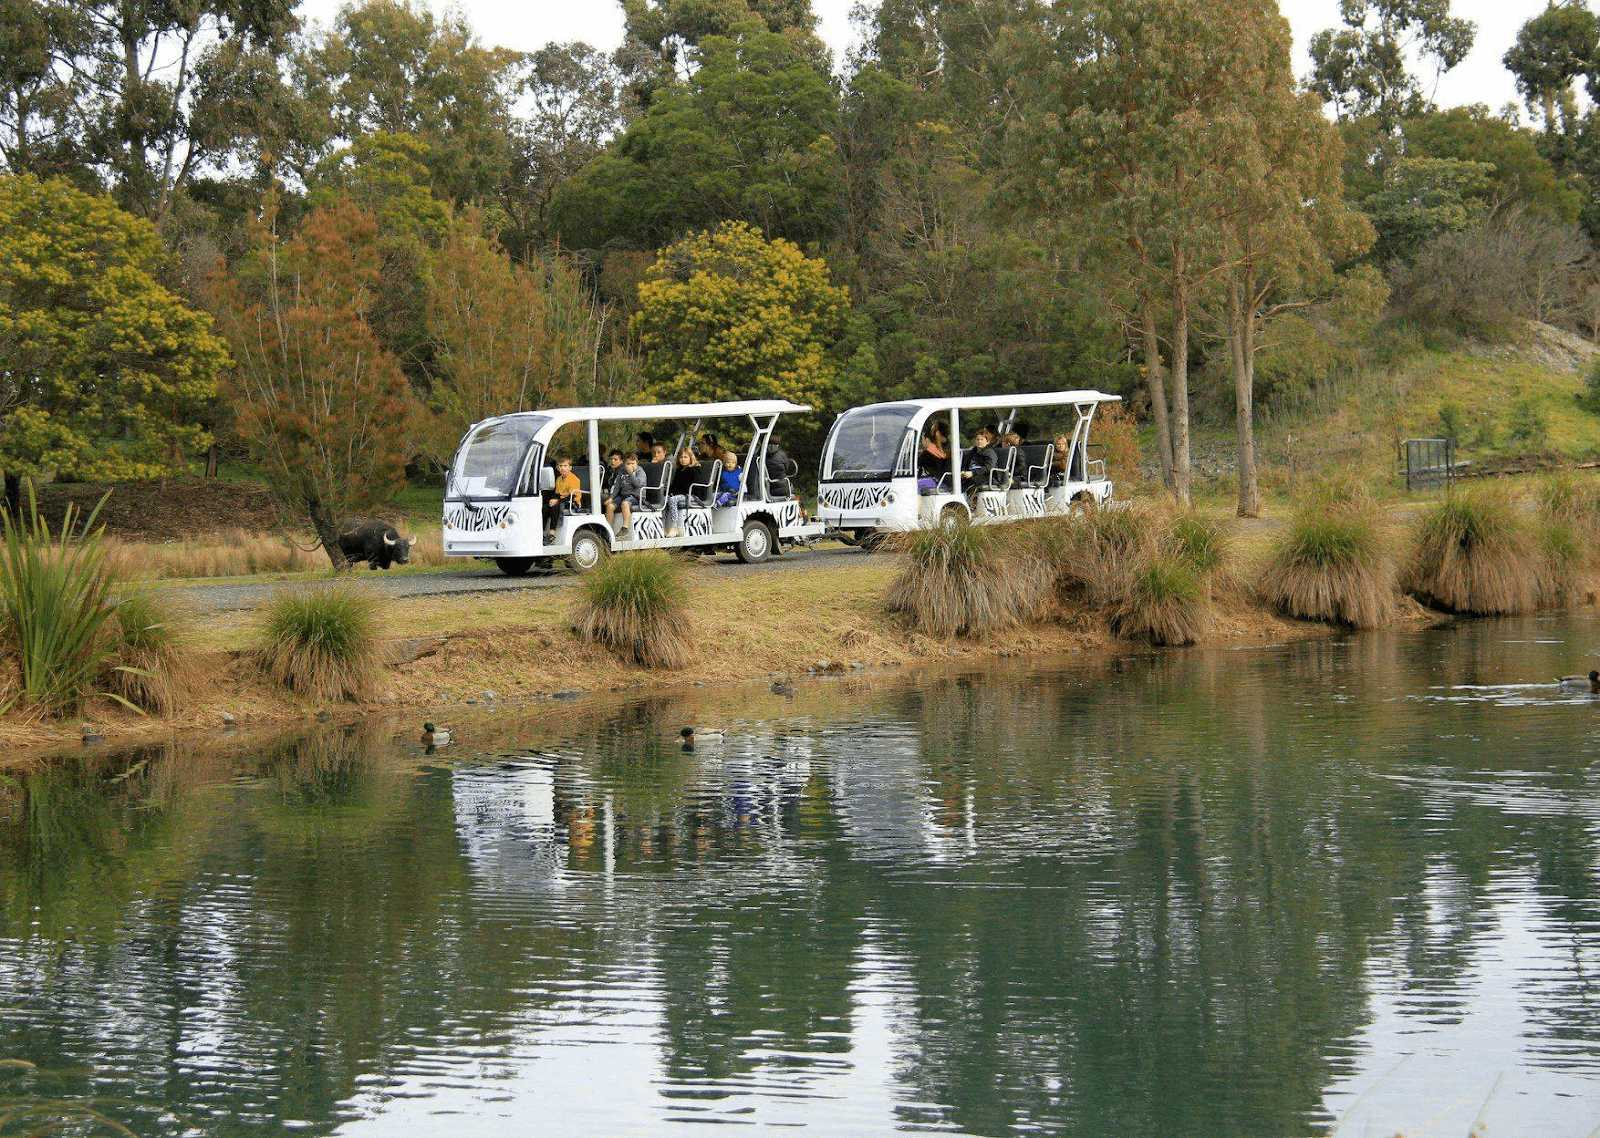 safari tram in orana wildlife park